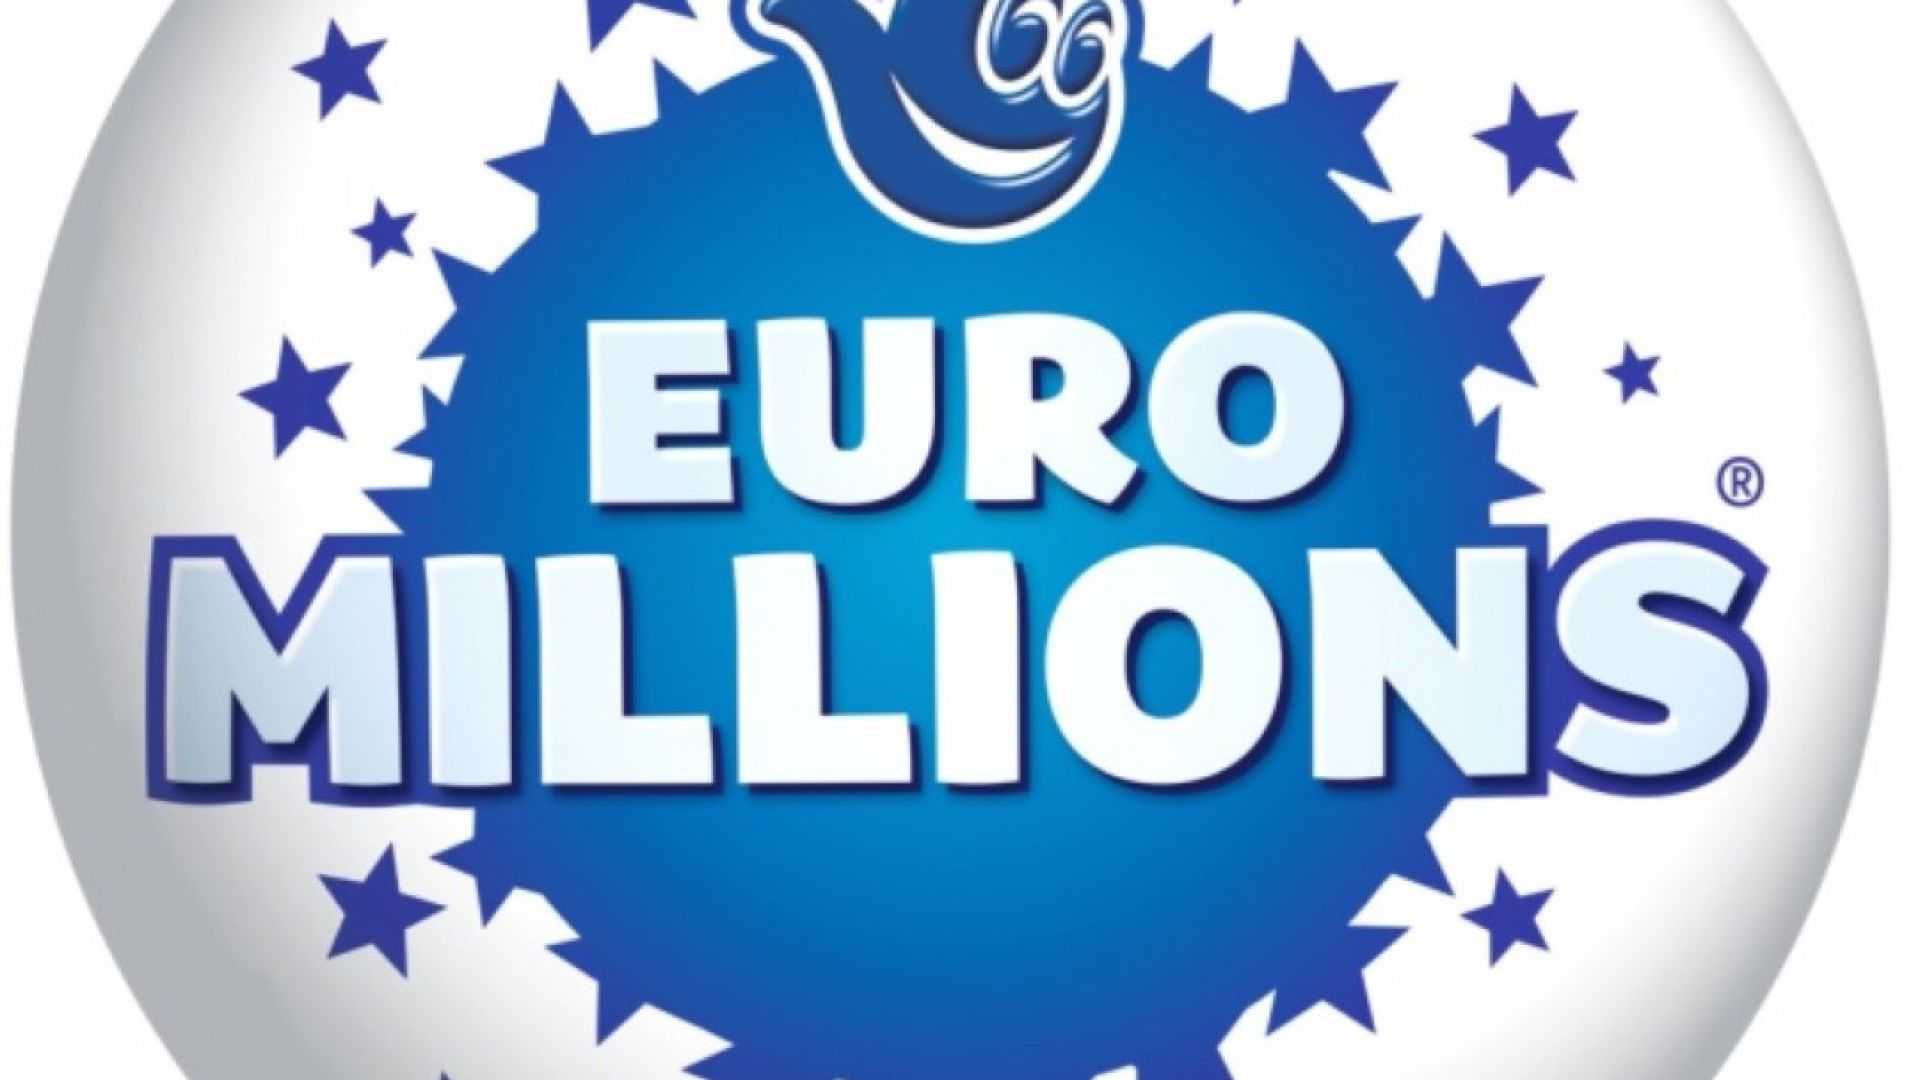 Millions d'euros | la plus grande loterie officielle d'Europe